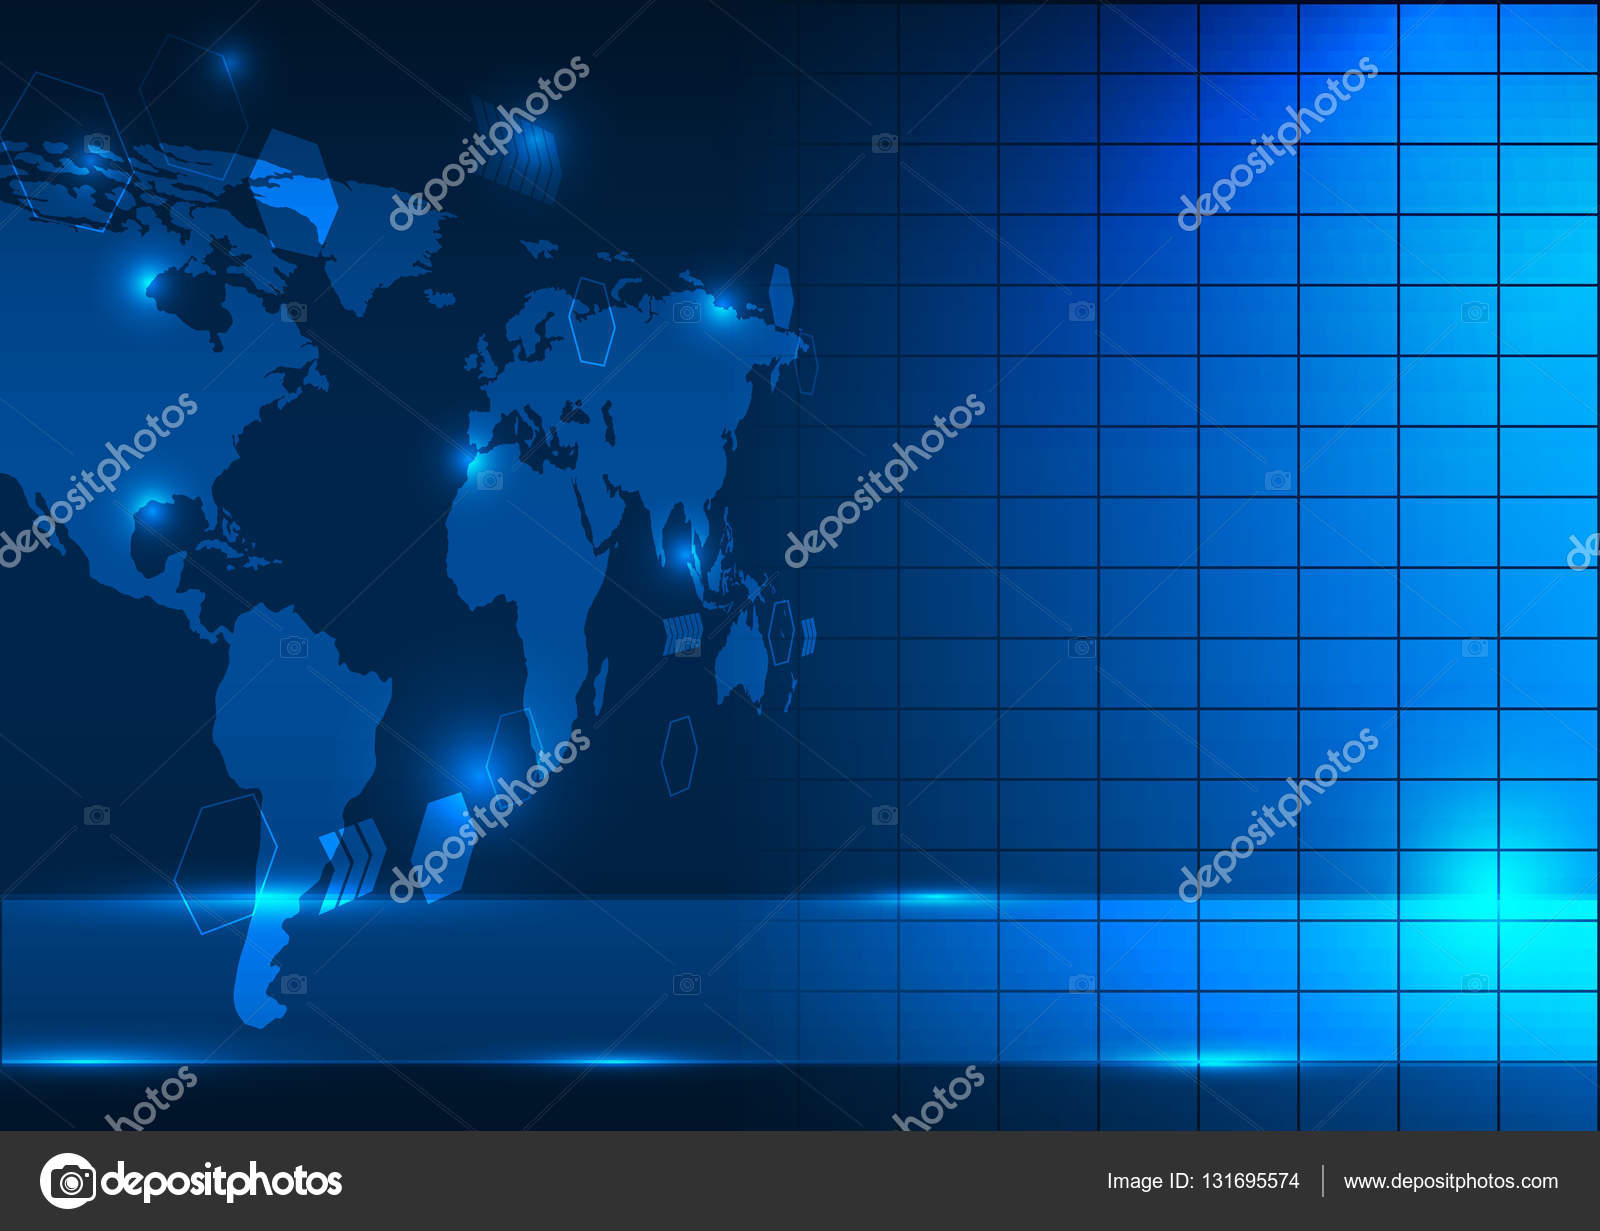 World map abstract background vector illustration elements of this world map abstract background vector illustration elements of this image furnished by nasa stock vector gumiabroncs Choice Image